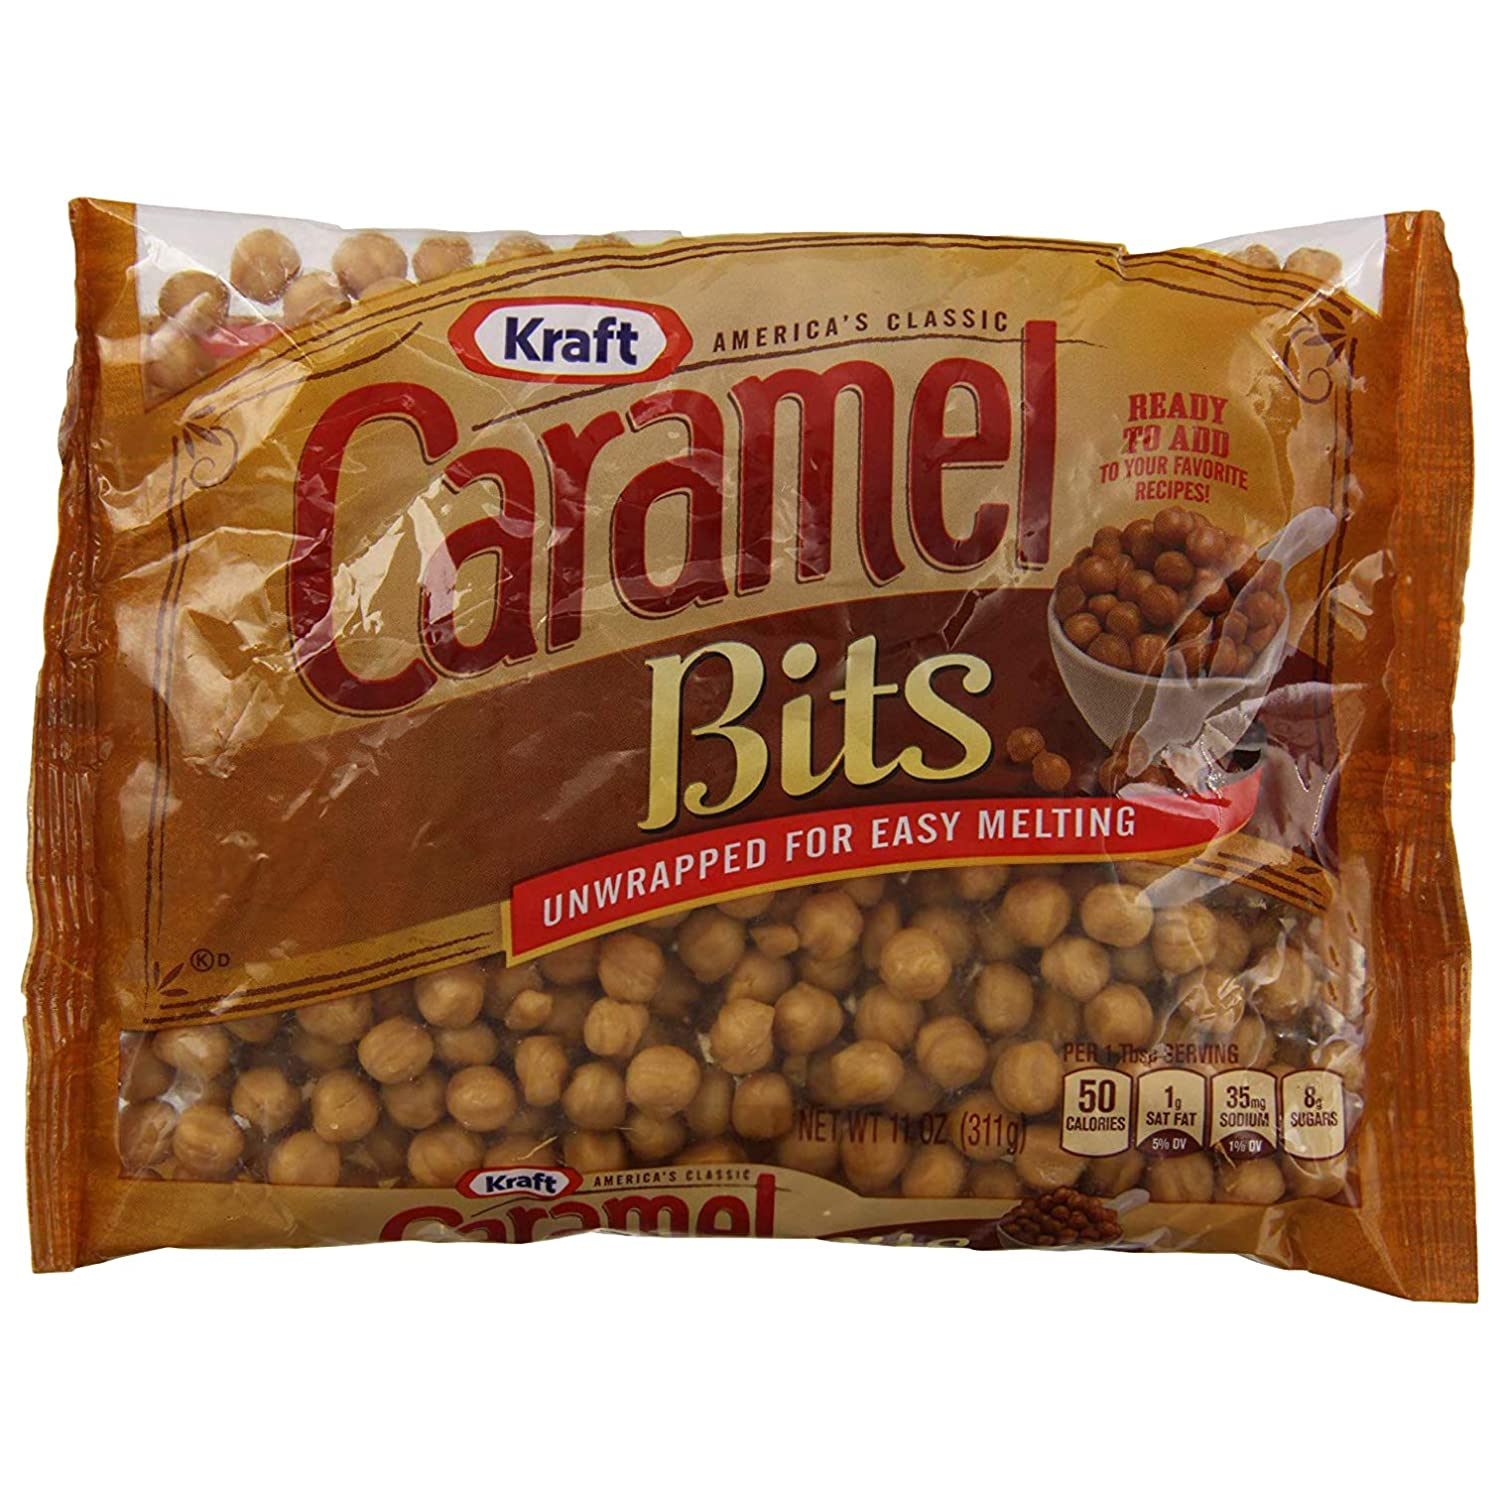 Amazon.com : Kraft Caramel Candy Bits, 11 Ounce (Pack of 3) : Grocery & Gourmet Food